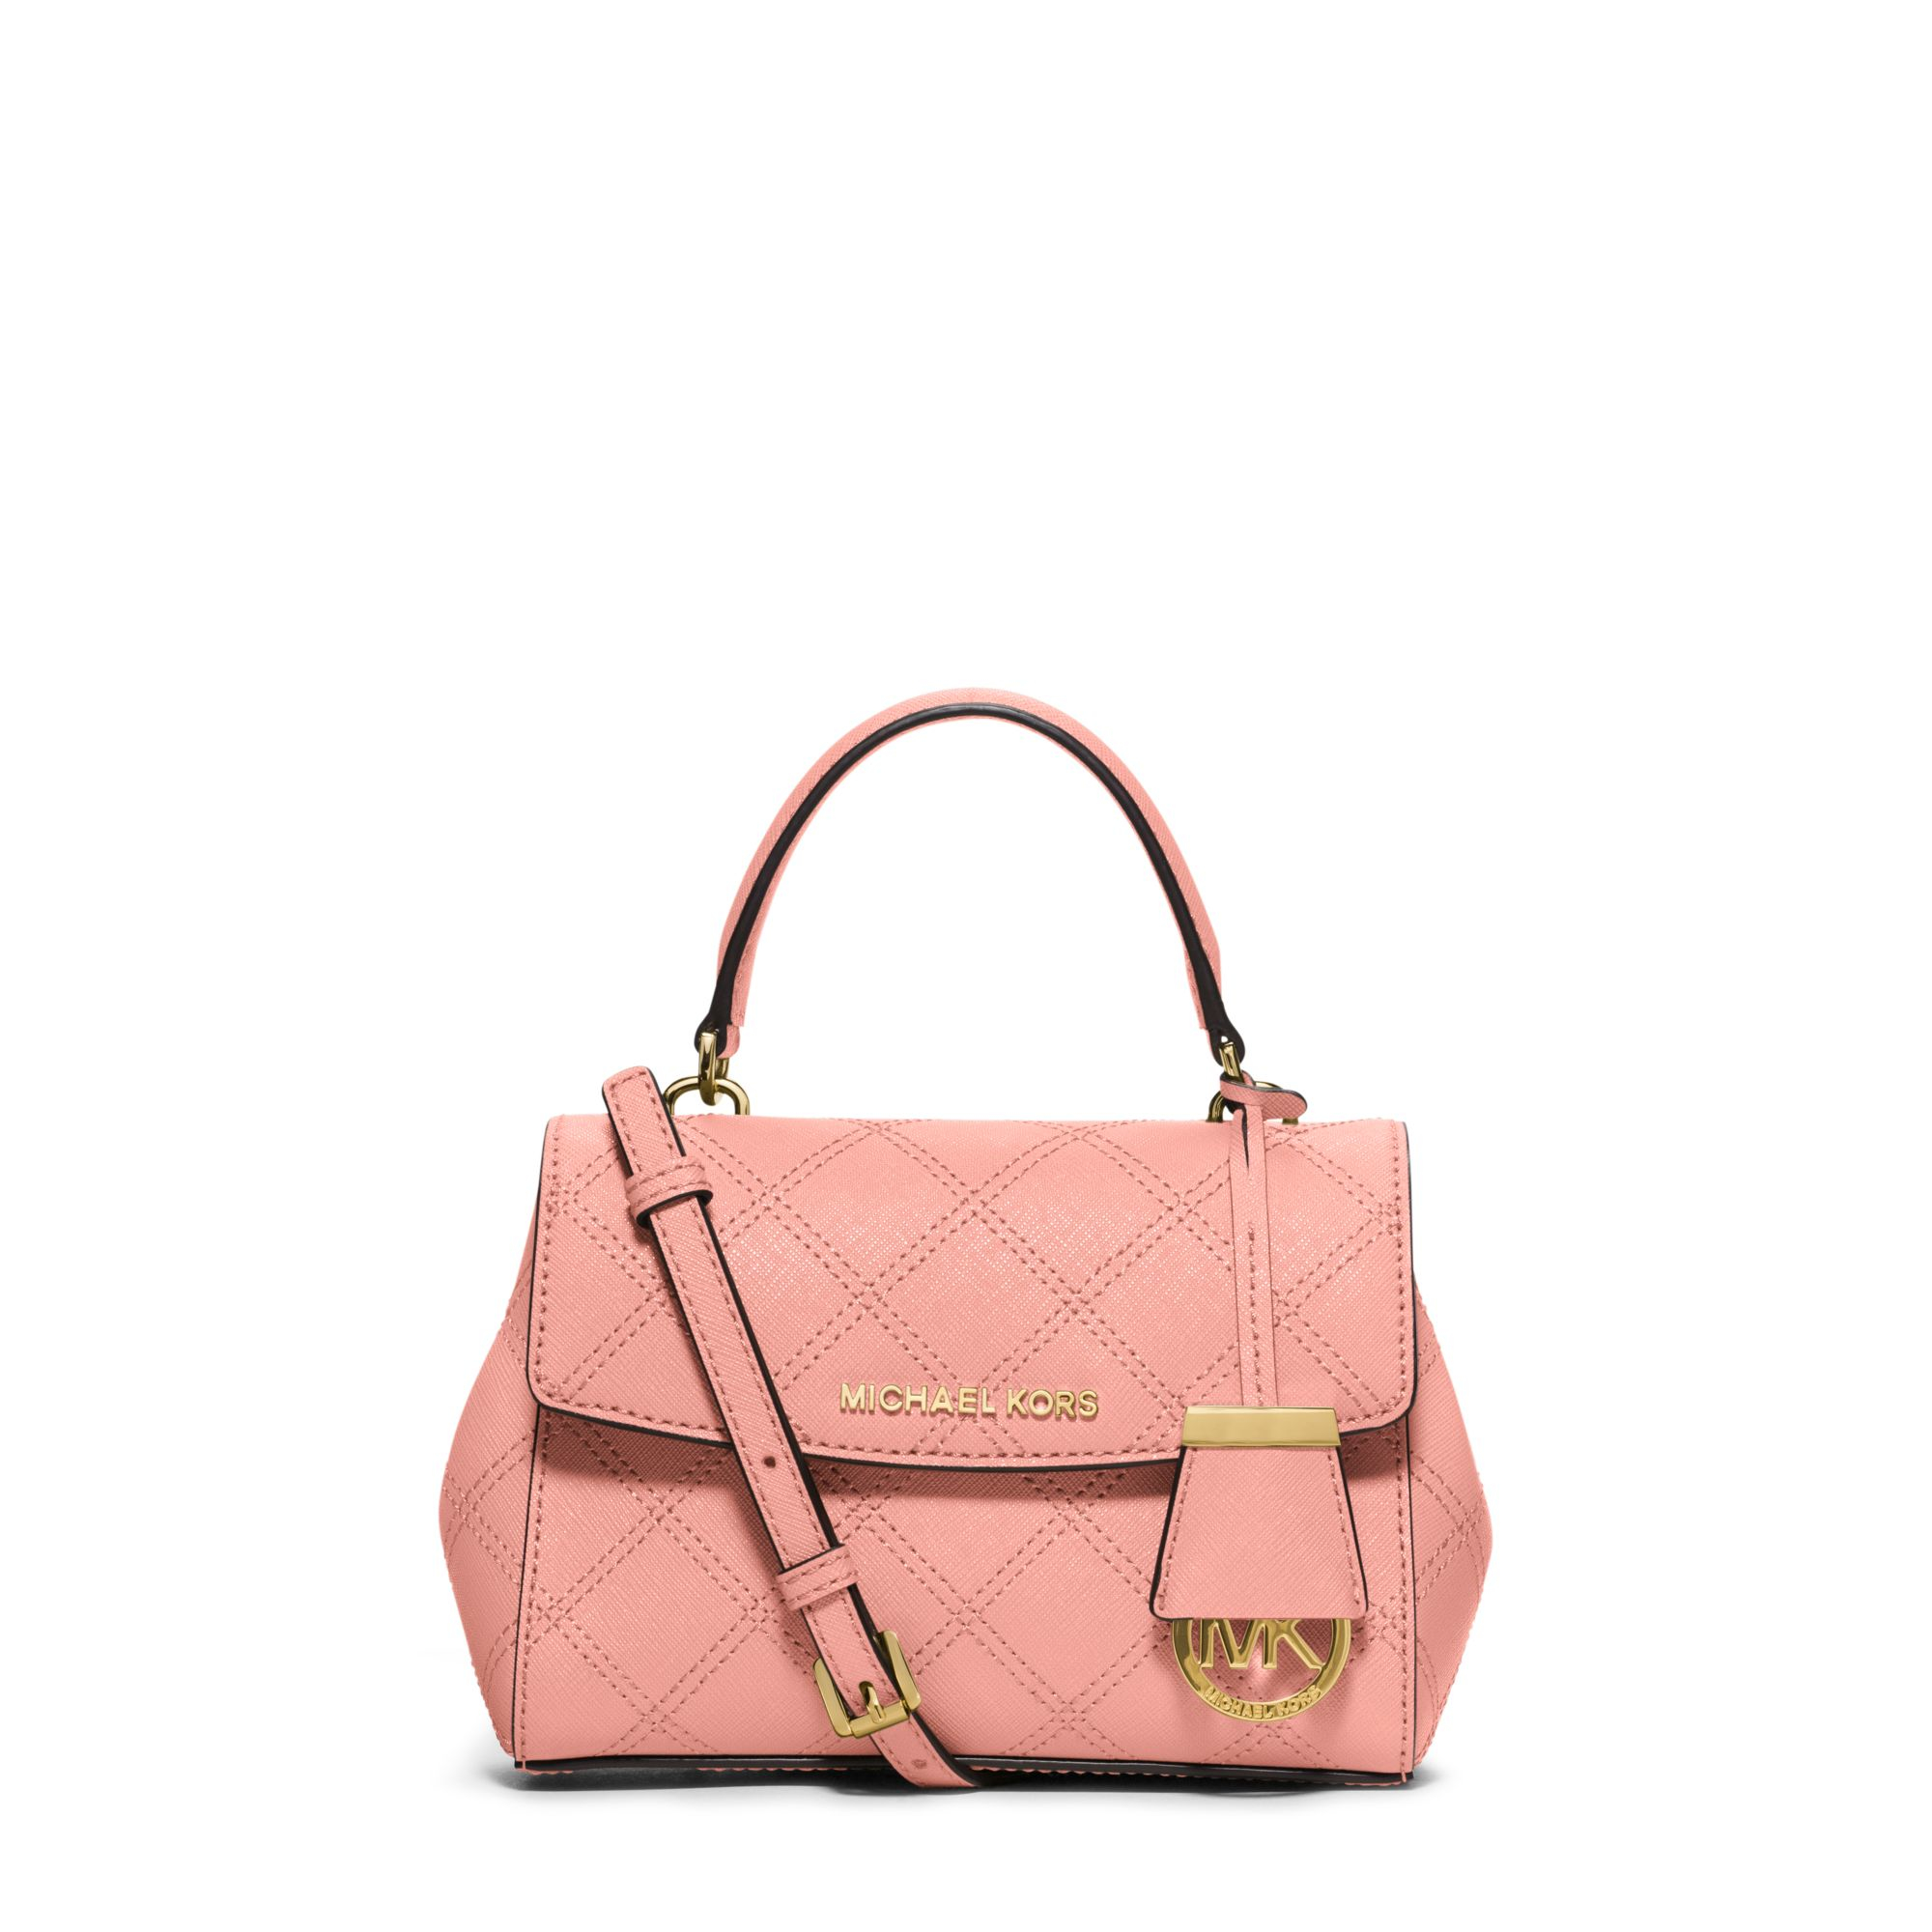 bebb90d9ede9 Michael Kors Ava Extra-small Saffiano Leather Crossbody in Pink - Lyst